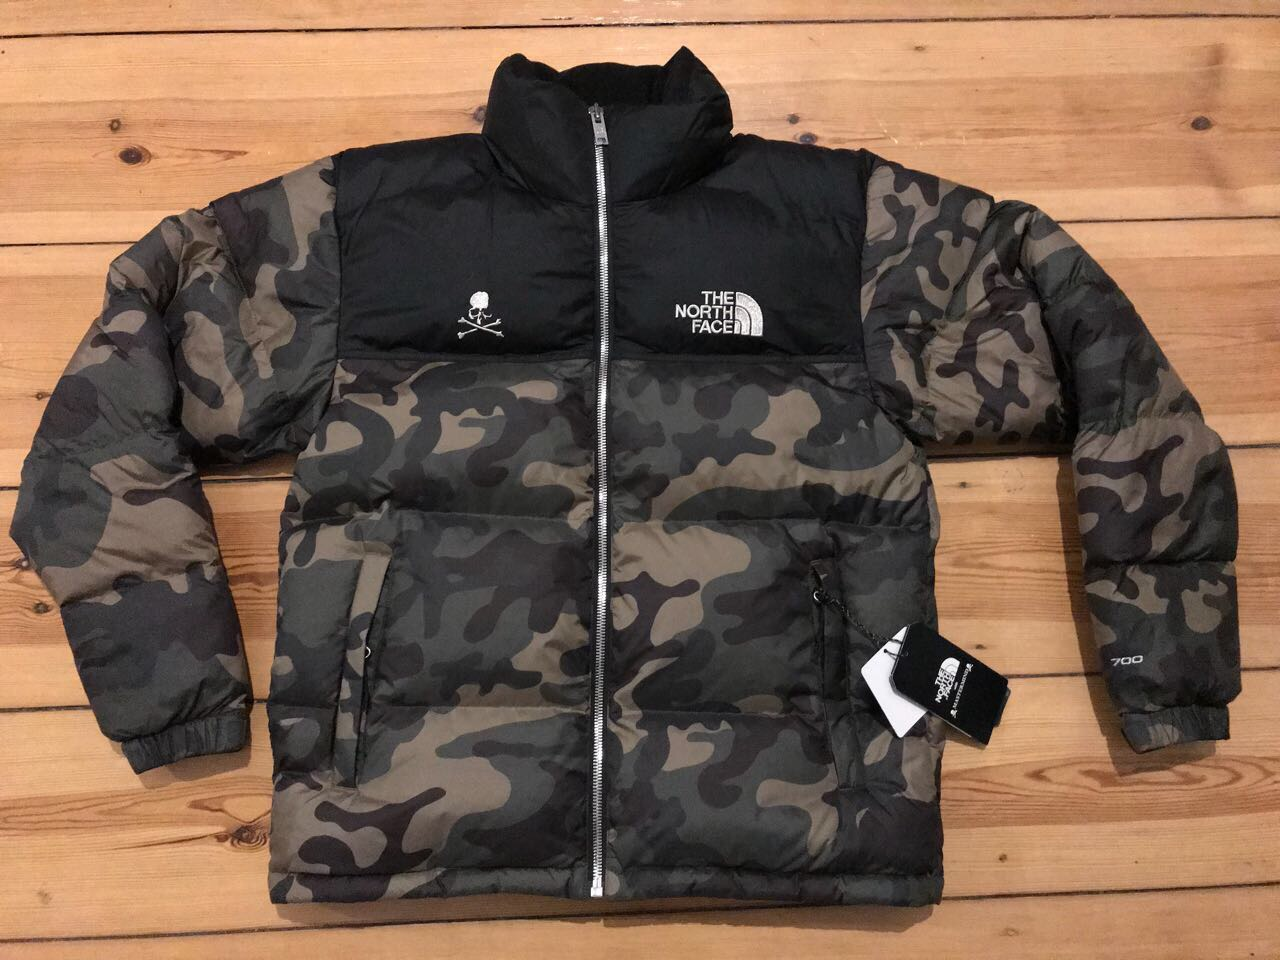 8b5bc5dbab The North Face The North Face x Mastermind Camo Nuptse Size s - Bombers for  Sale - Grailed